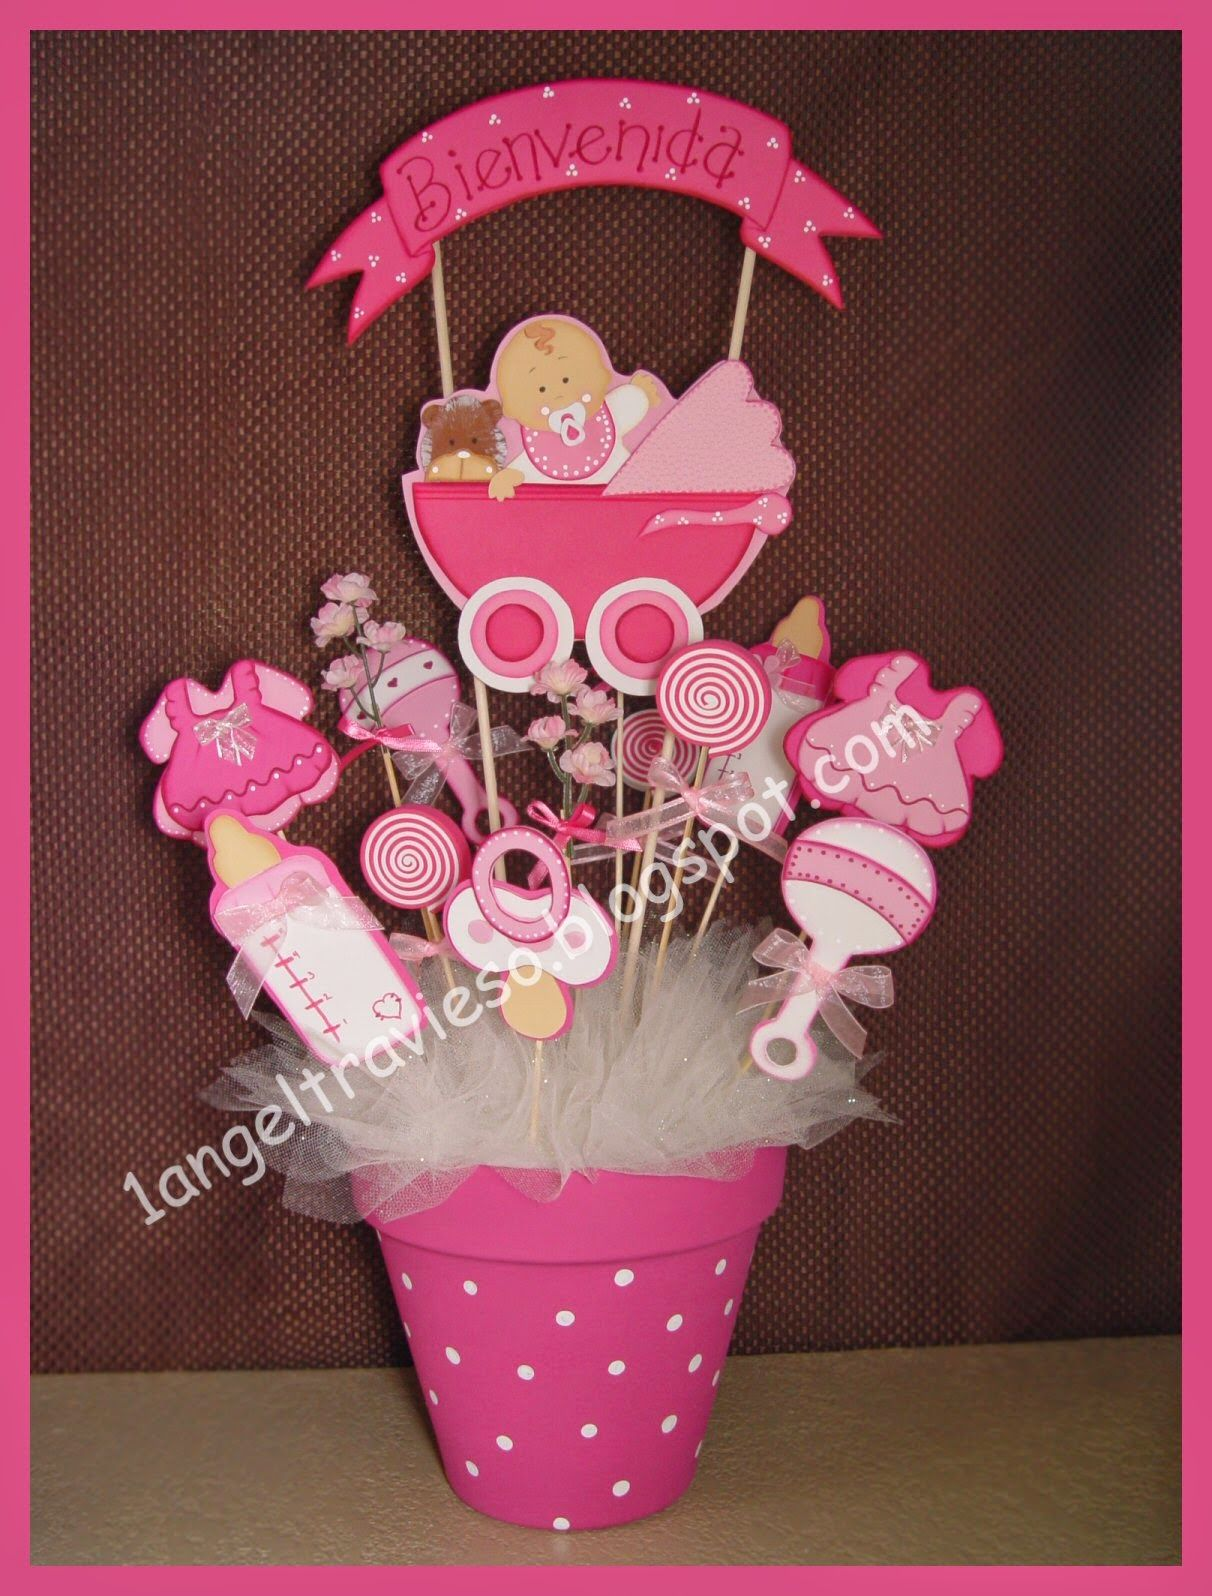 1 angel travieso baby shower creaciones babe shower for Mesa baby shower nino